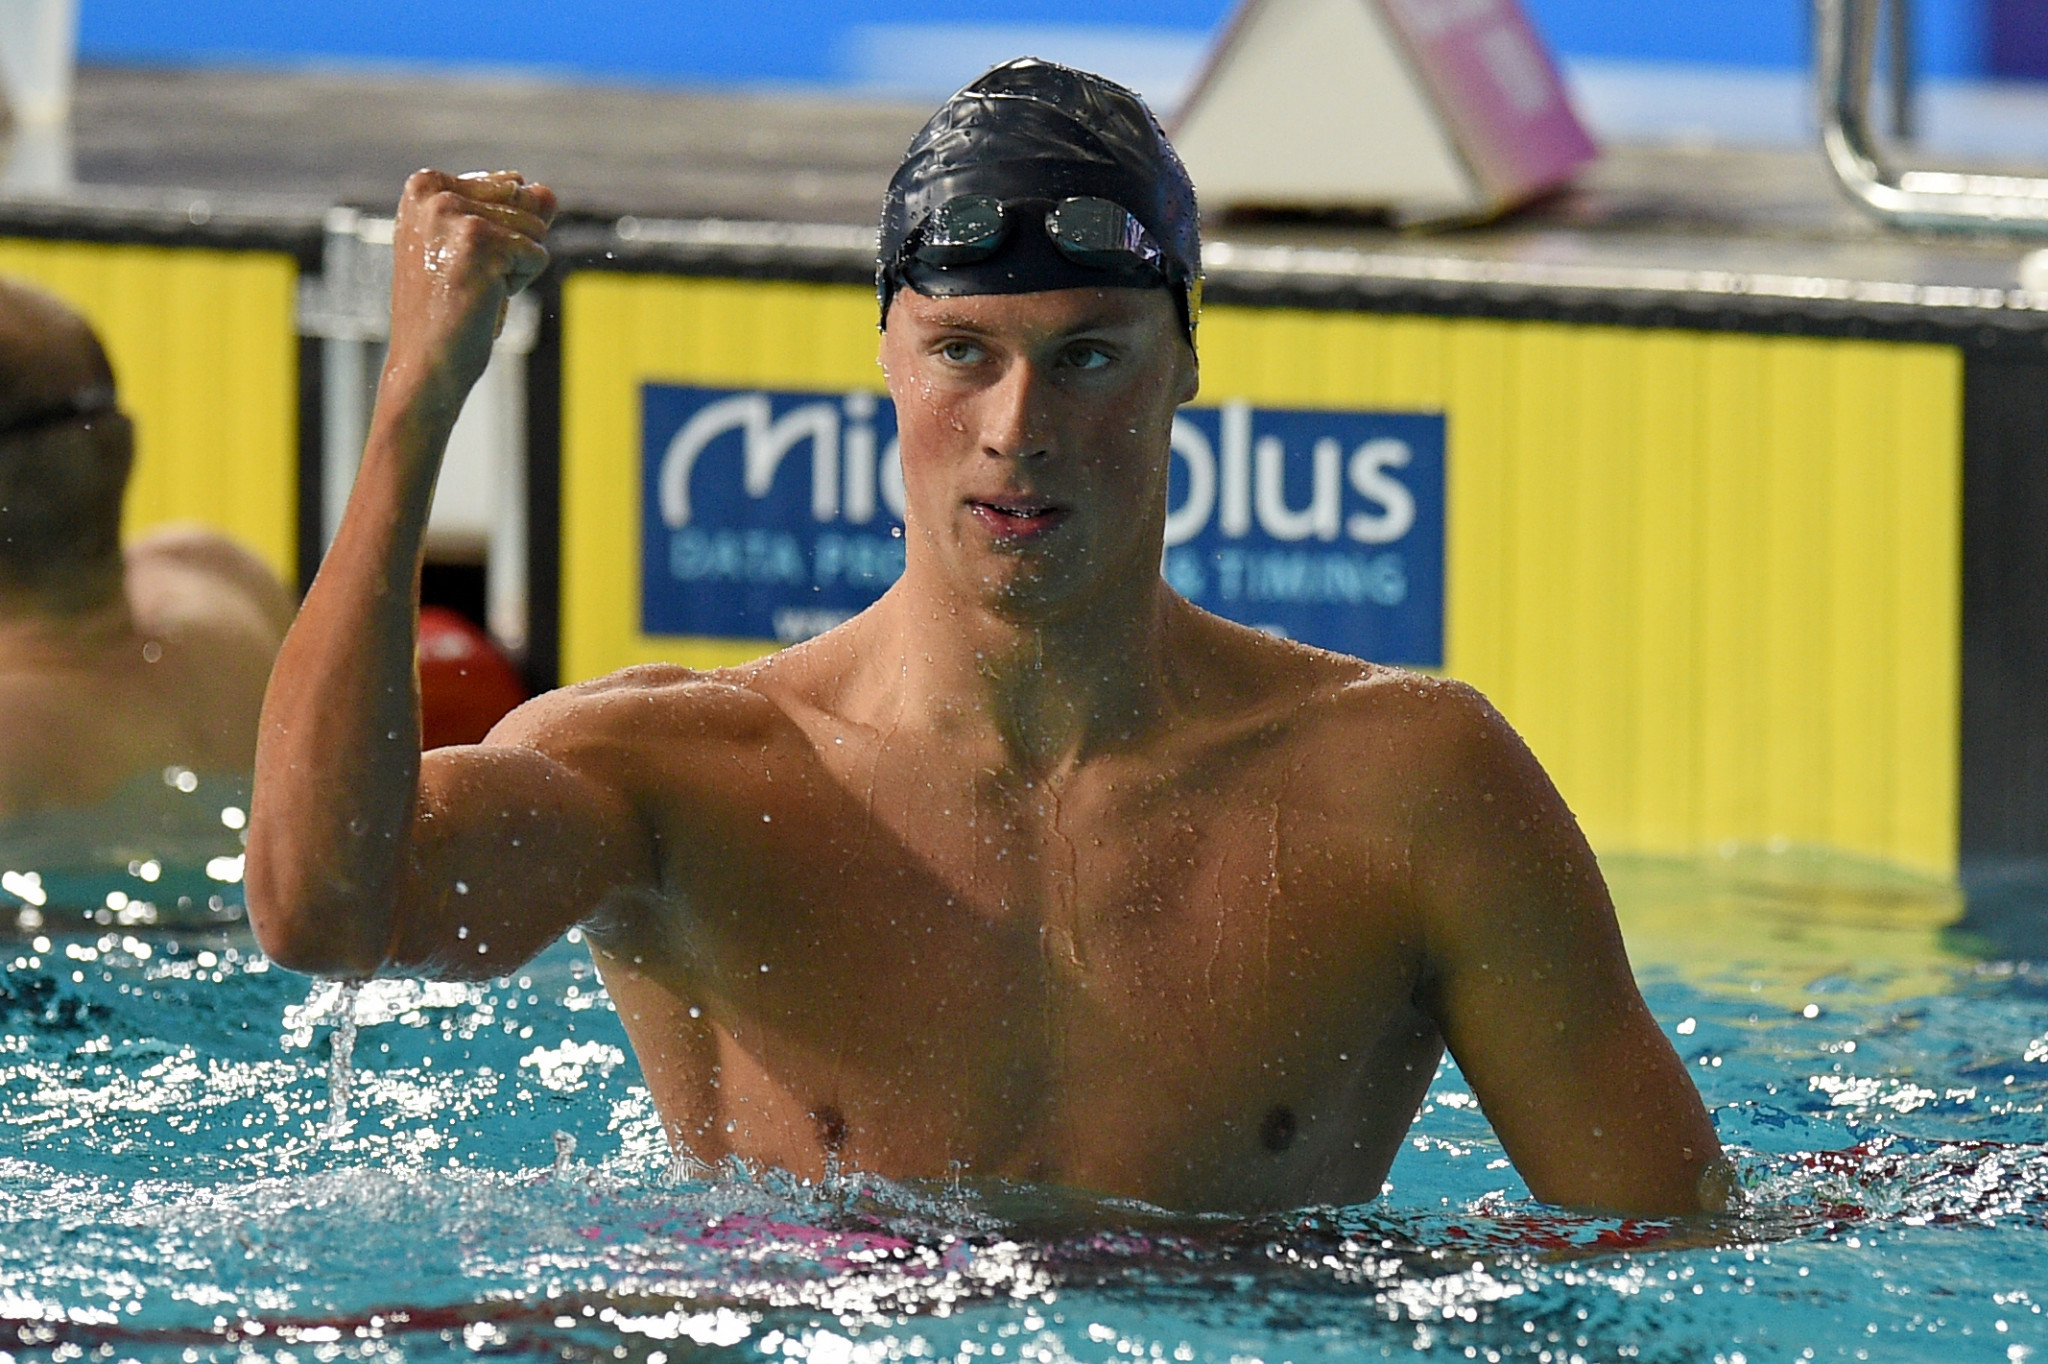 Ukraine's Mykhailo Romanchuk won the men's 400m freestyle title on the opening night of swimming finals ©Getty Images